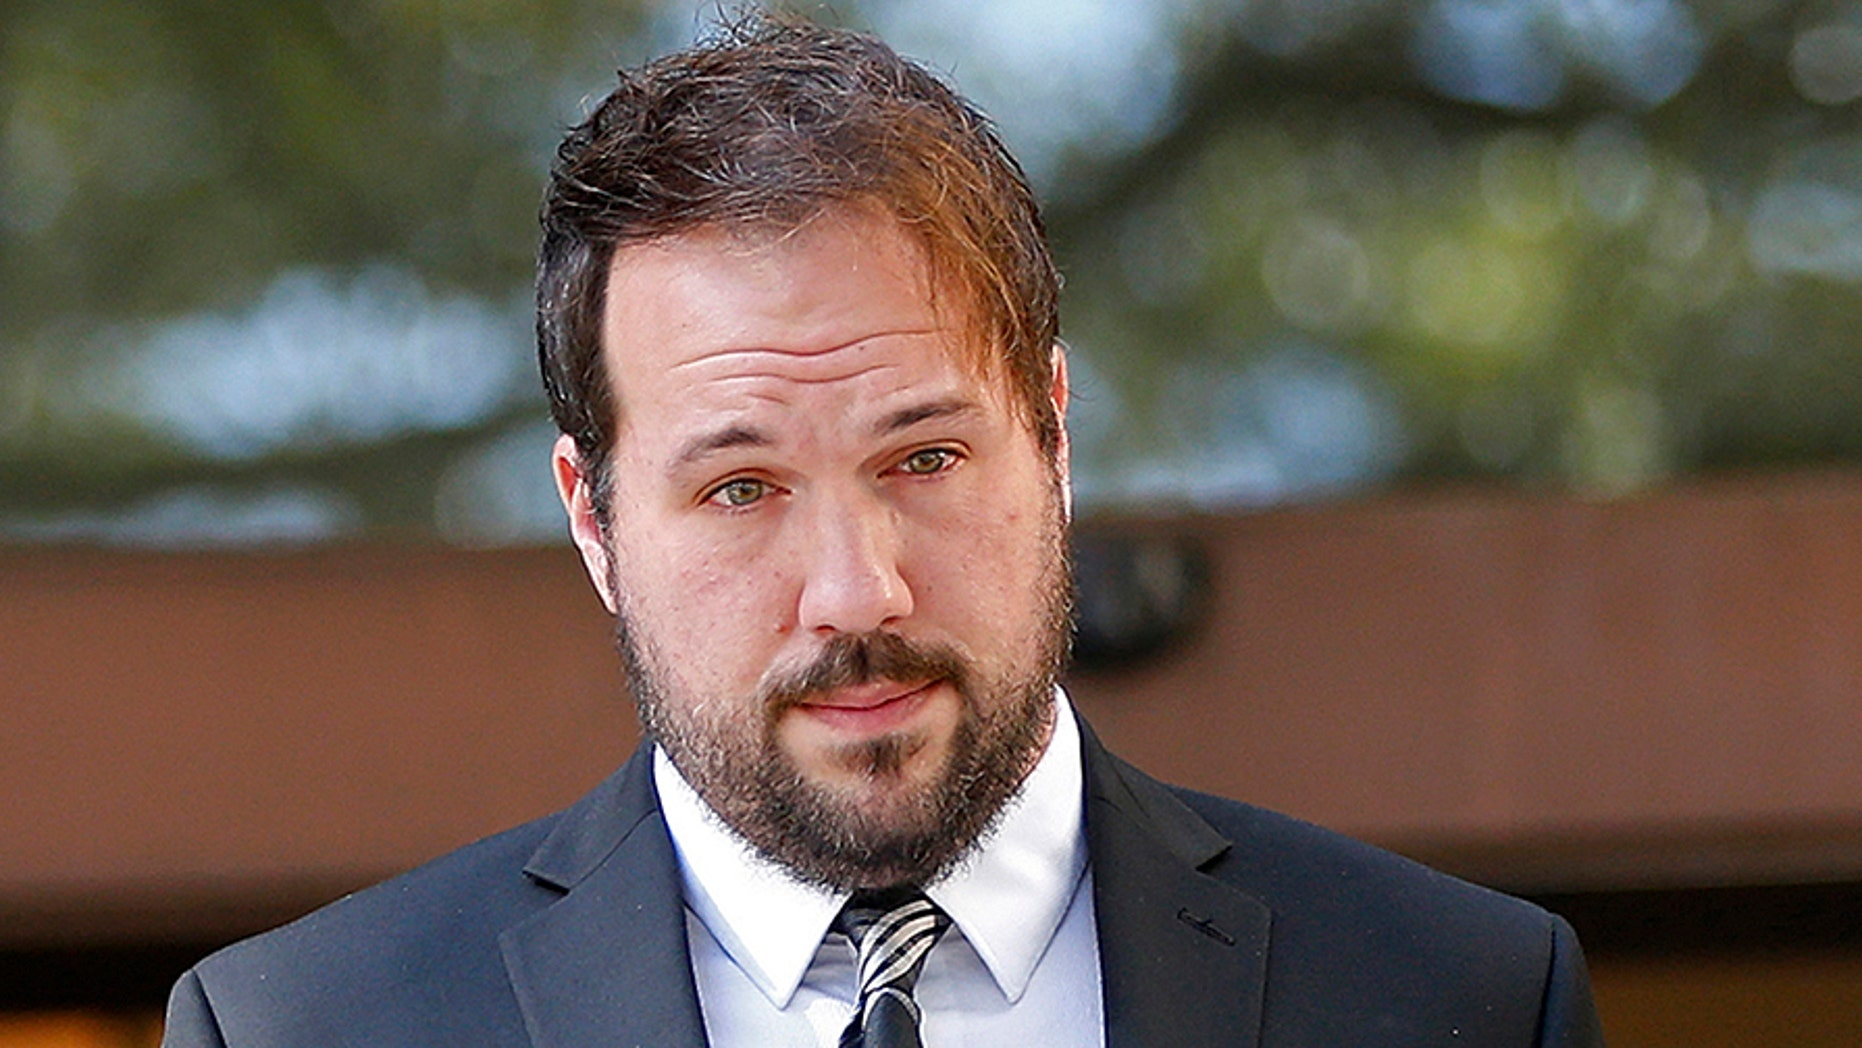 Jordan Hamlett, left, leaves federal court with his attorney Michael Fiser, following his guilty plea in Baton Rouge, La., Monday, Dec. 11, 2017. The Louisiana private investigator pleaded guilty in his alleged attempts to access Donald Trump's tax returns during the presidential campaign. Authorities have said Hamlett failed in his attempts to get Trump's tax returns through a U.S. Department of Education financial aid website. The 32-year-old Lafayette resident was charged with misusing a Social Security number. His trial had been scheduled to start this week, but the judge originally assigned to the case died Saturday. (AP Photo/Gerald Herbert)